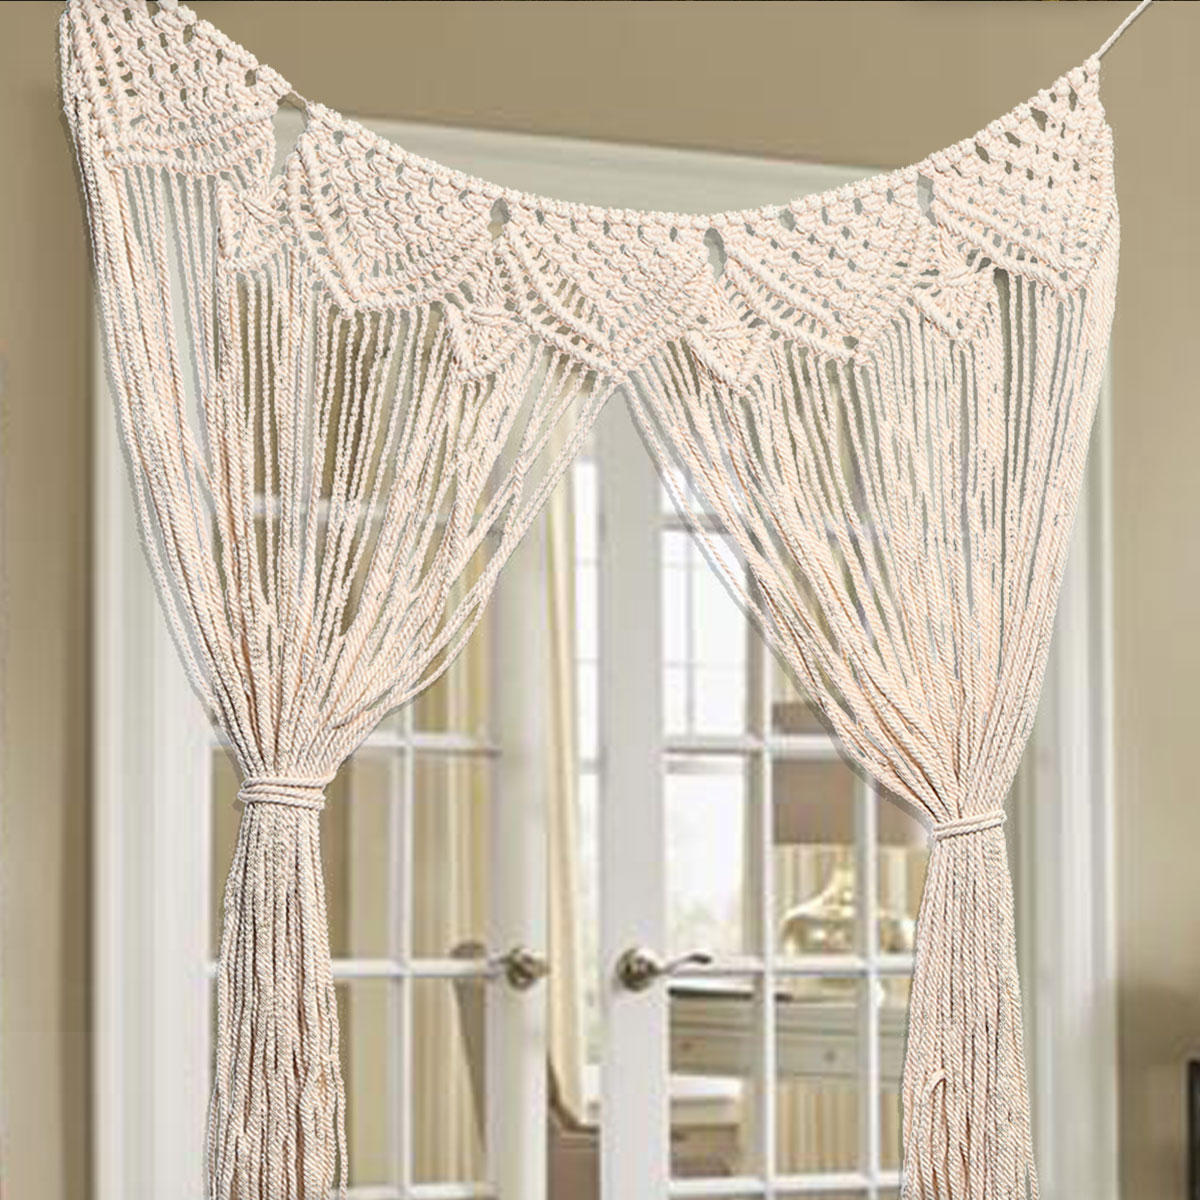 Macrame Wall Curtains Large Hanging Art Door Window Curtain Wedding Backdrop Tapestry